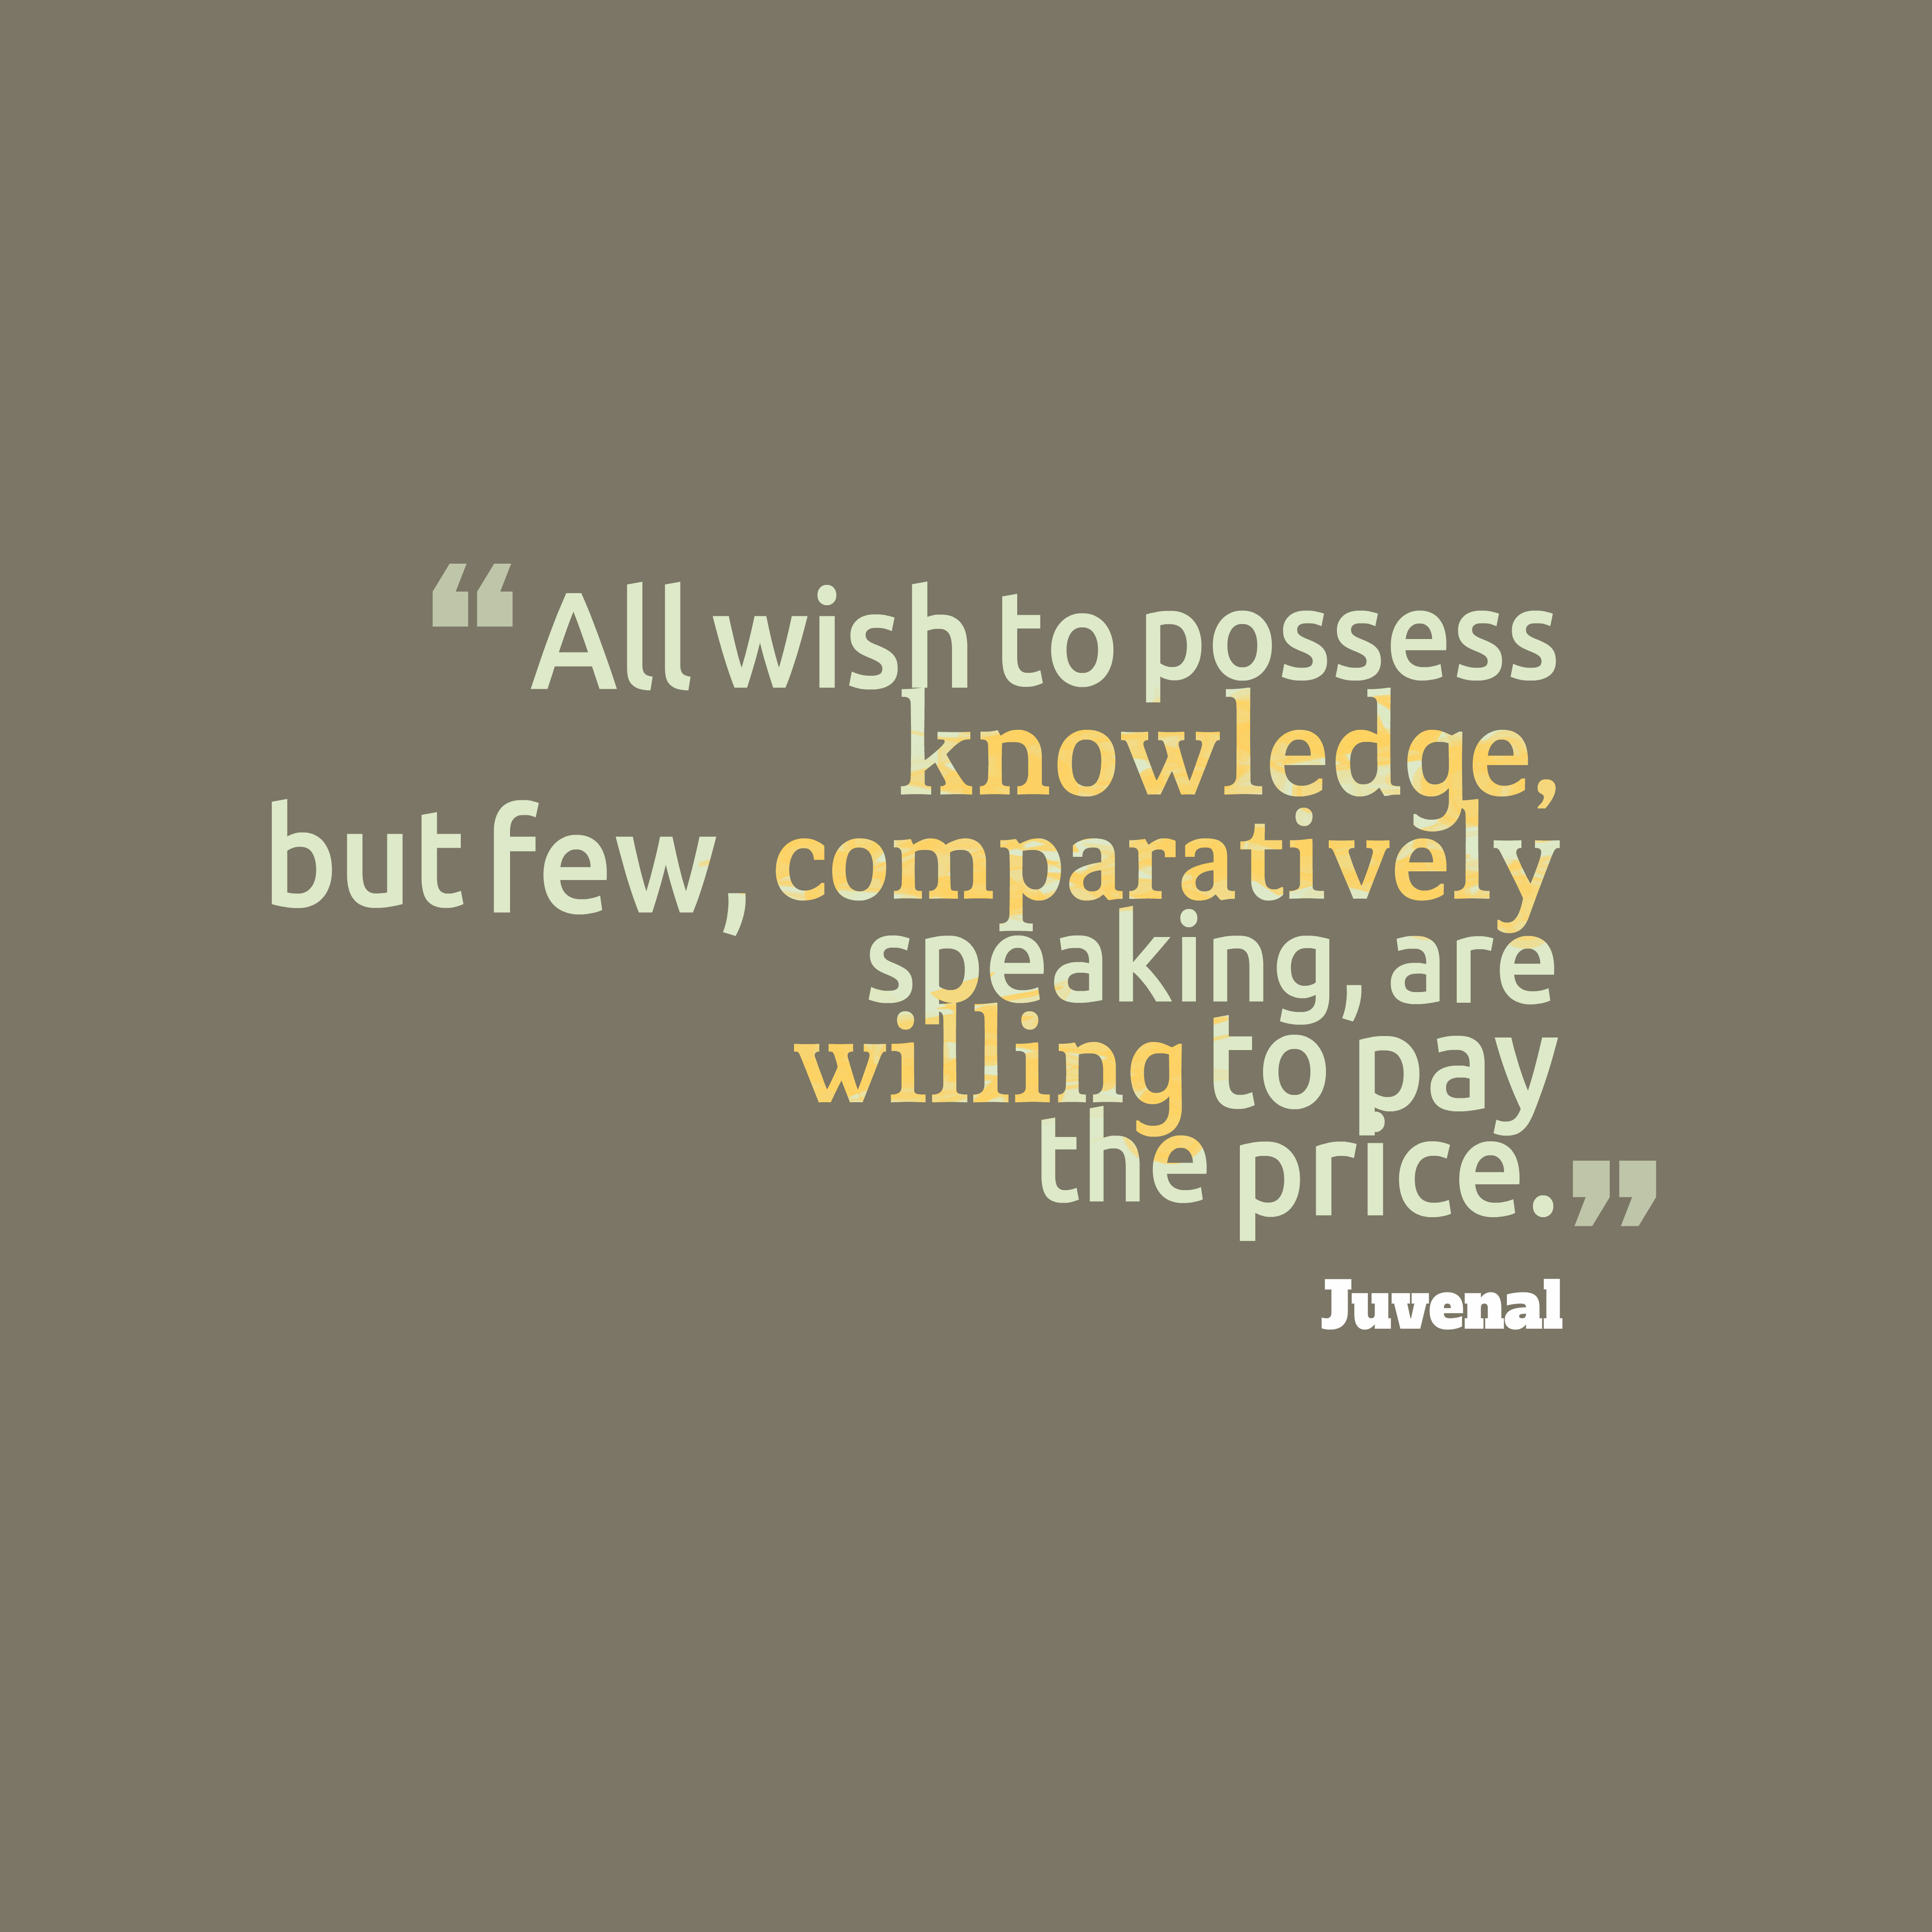 Quotes image of All wish to possess knowledge, but few, comparatively speaking, are willing to pay the price.